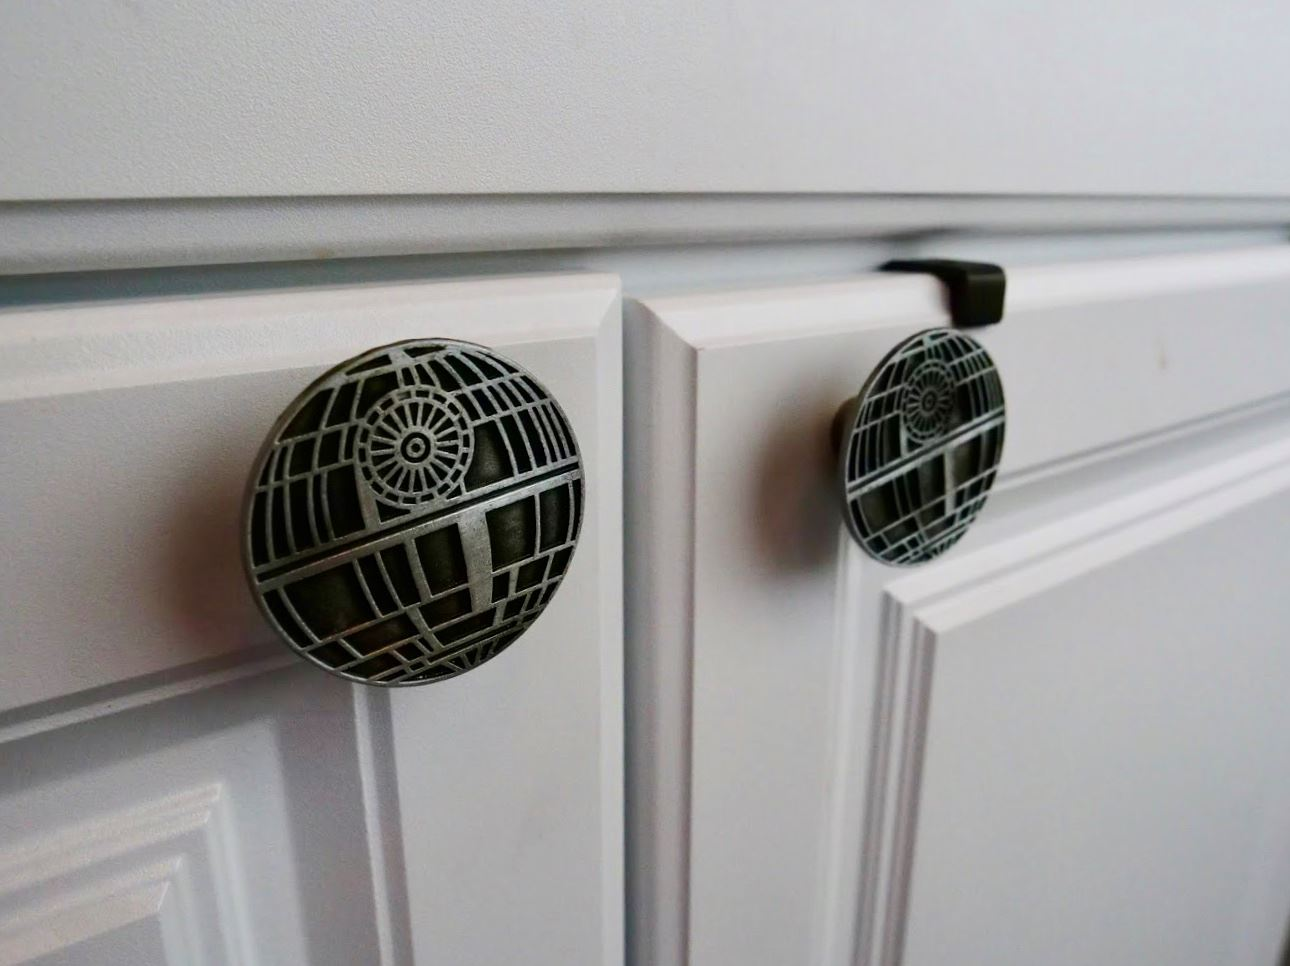 Death Star knobs in Star Wars themed tiny home at Docs Drive-In Theatre